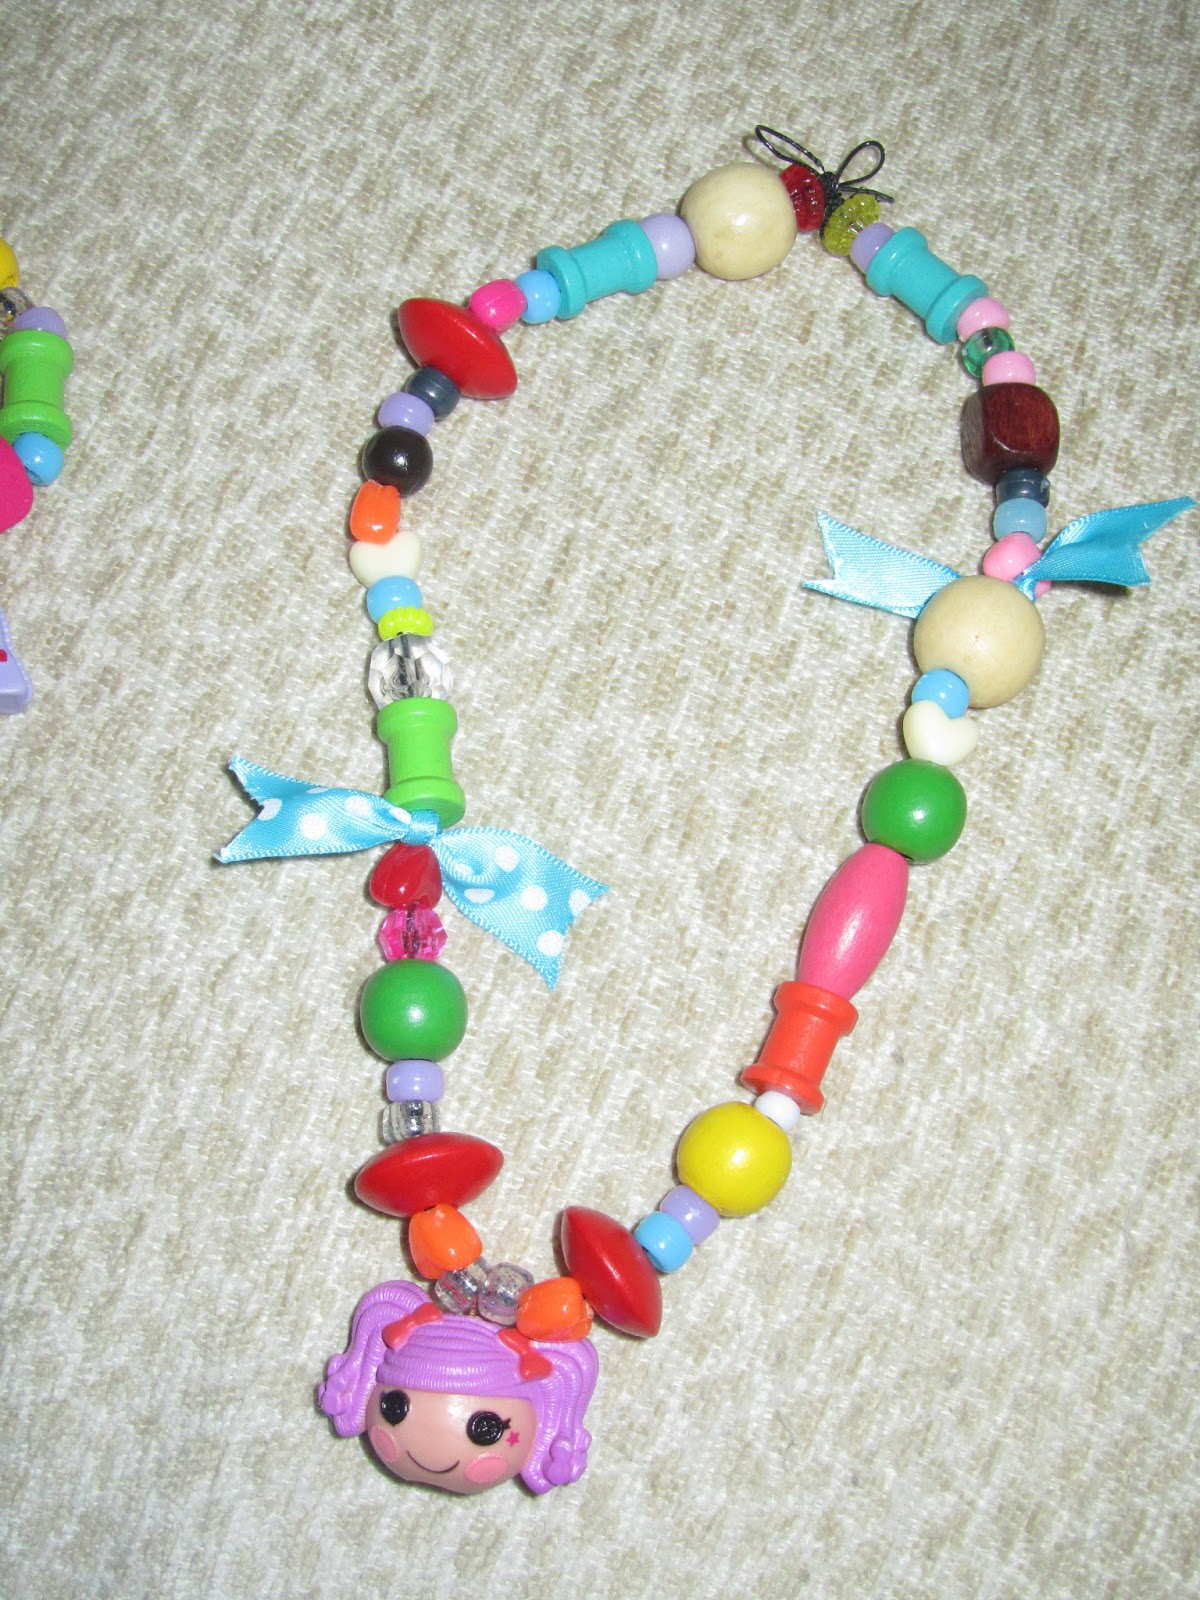 Click on the link to find out how to make the Lalaloopsy necklaces